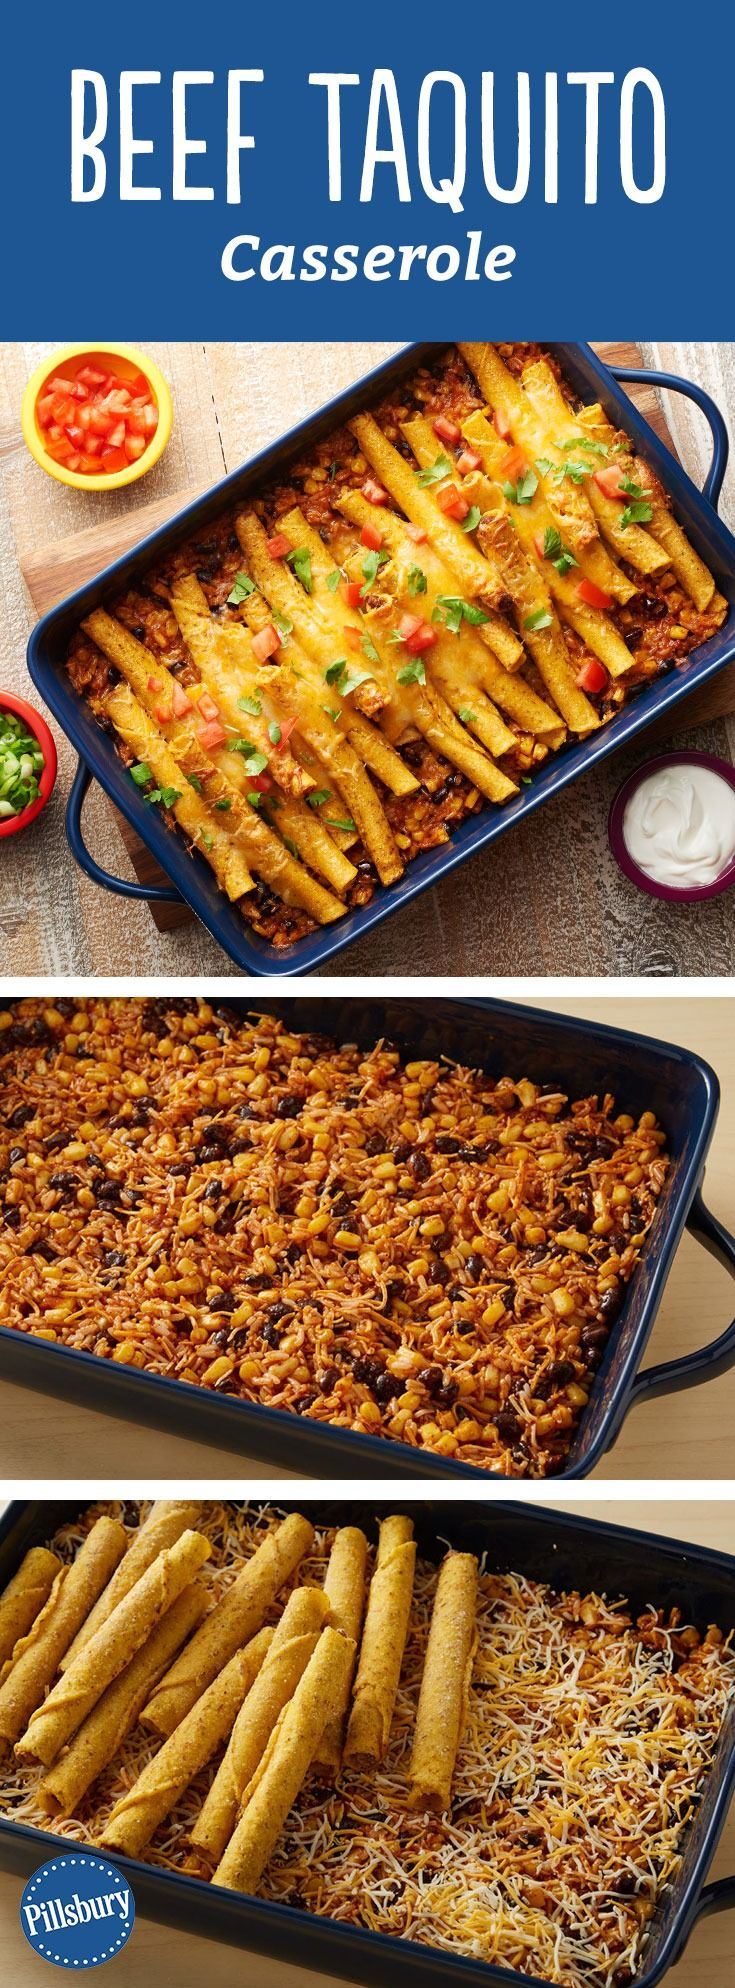 Frozen beef taquitos are the perfect topper for this flavorful, veggie-packed Southwestern casserole. Serve with all your favorite fresh toppings, like cilantro, diced tomatoes green onions, and salsa, sour cream or even guacamole. Expert tip: If your family prefers chicken instead, sub the beef taquitos for the chicken variety.